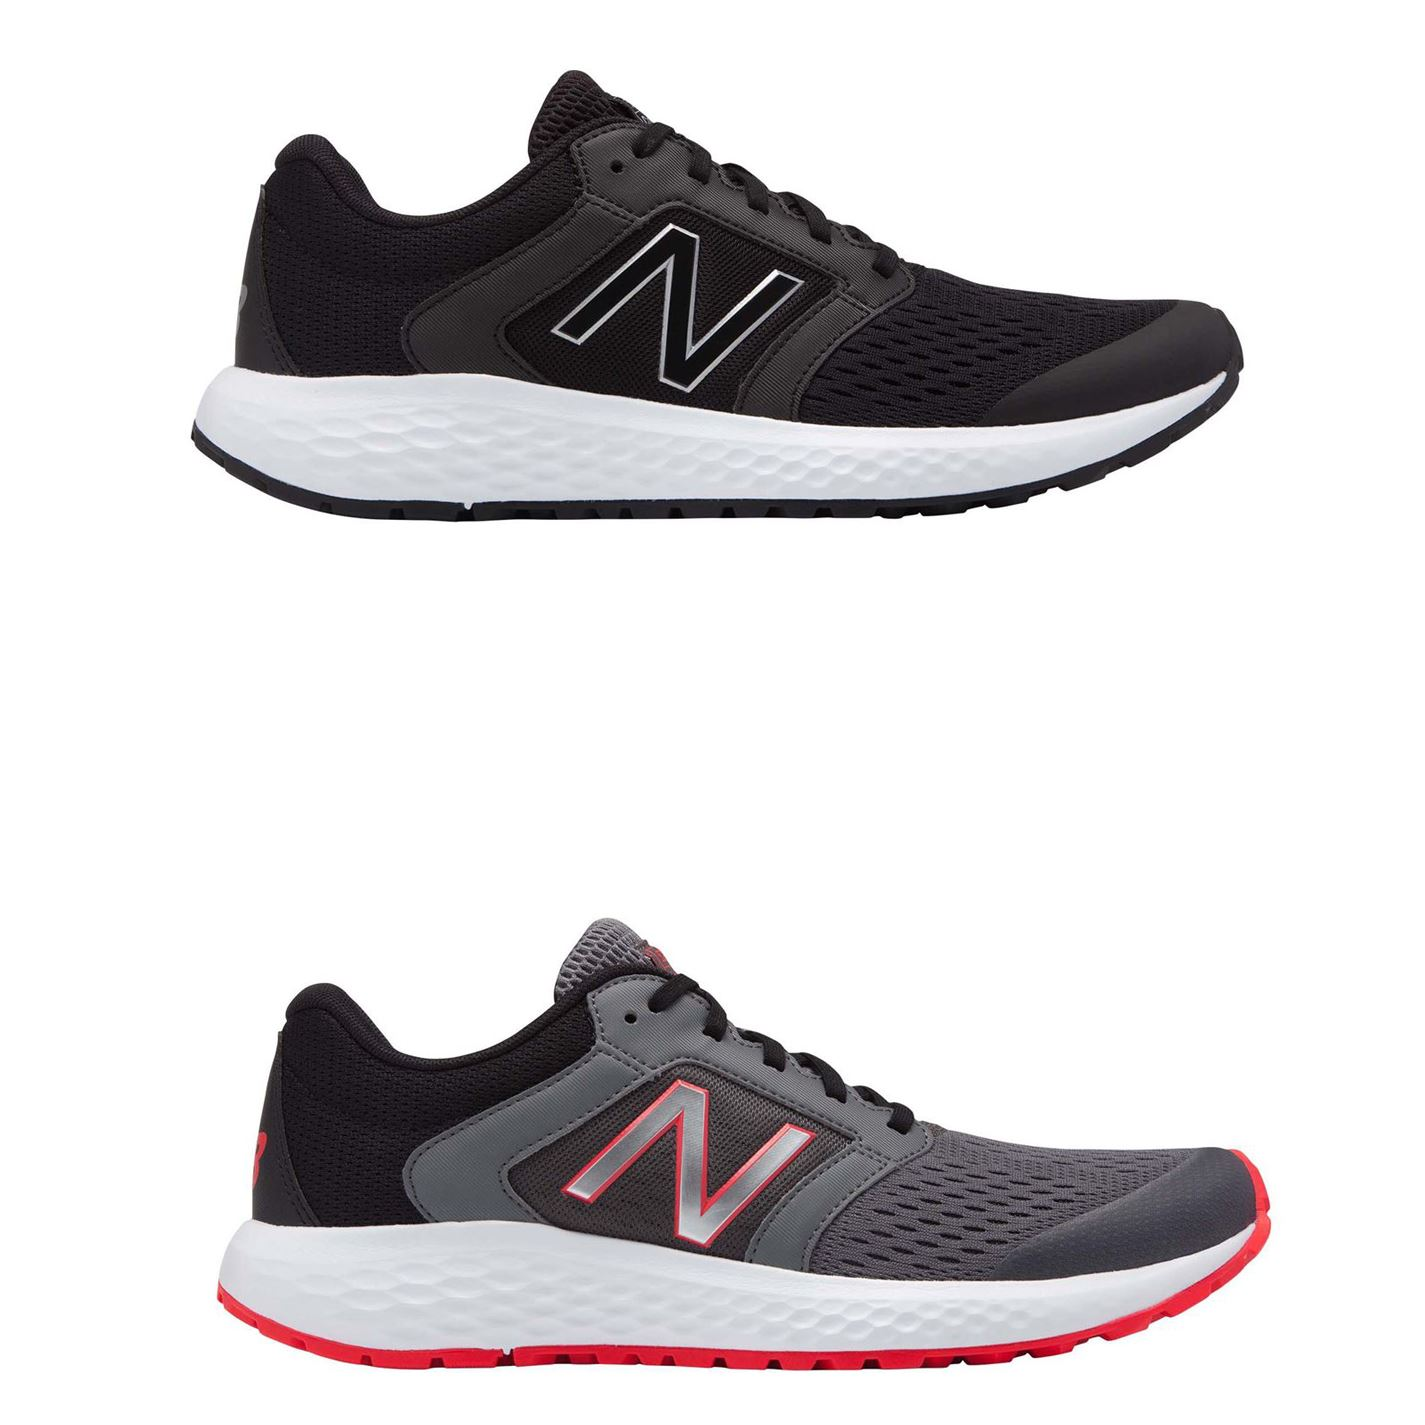 New Balance 520V5 M520SB5 Mens Black Extra Wide 4E Athletic Running Shoes 14